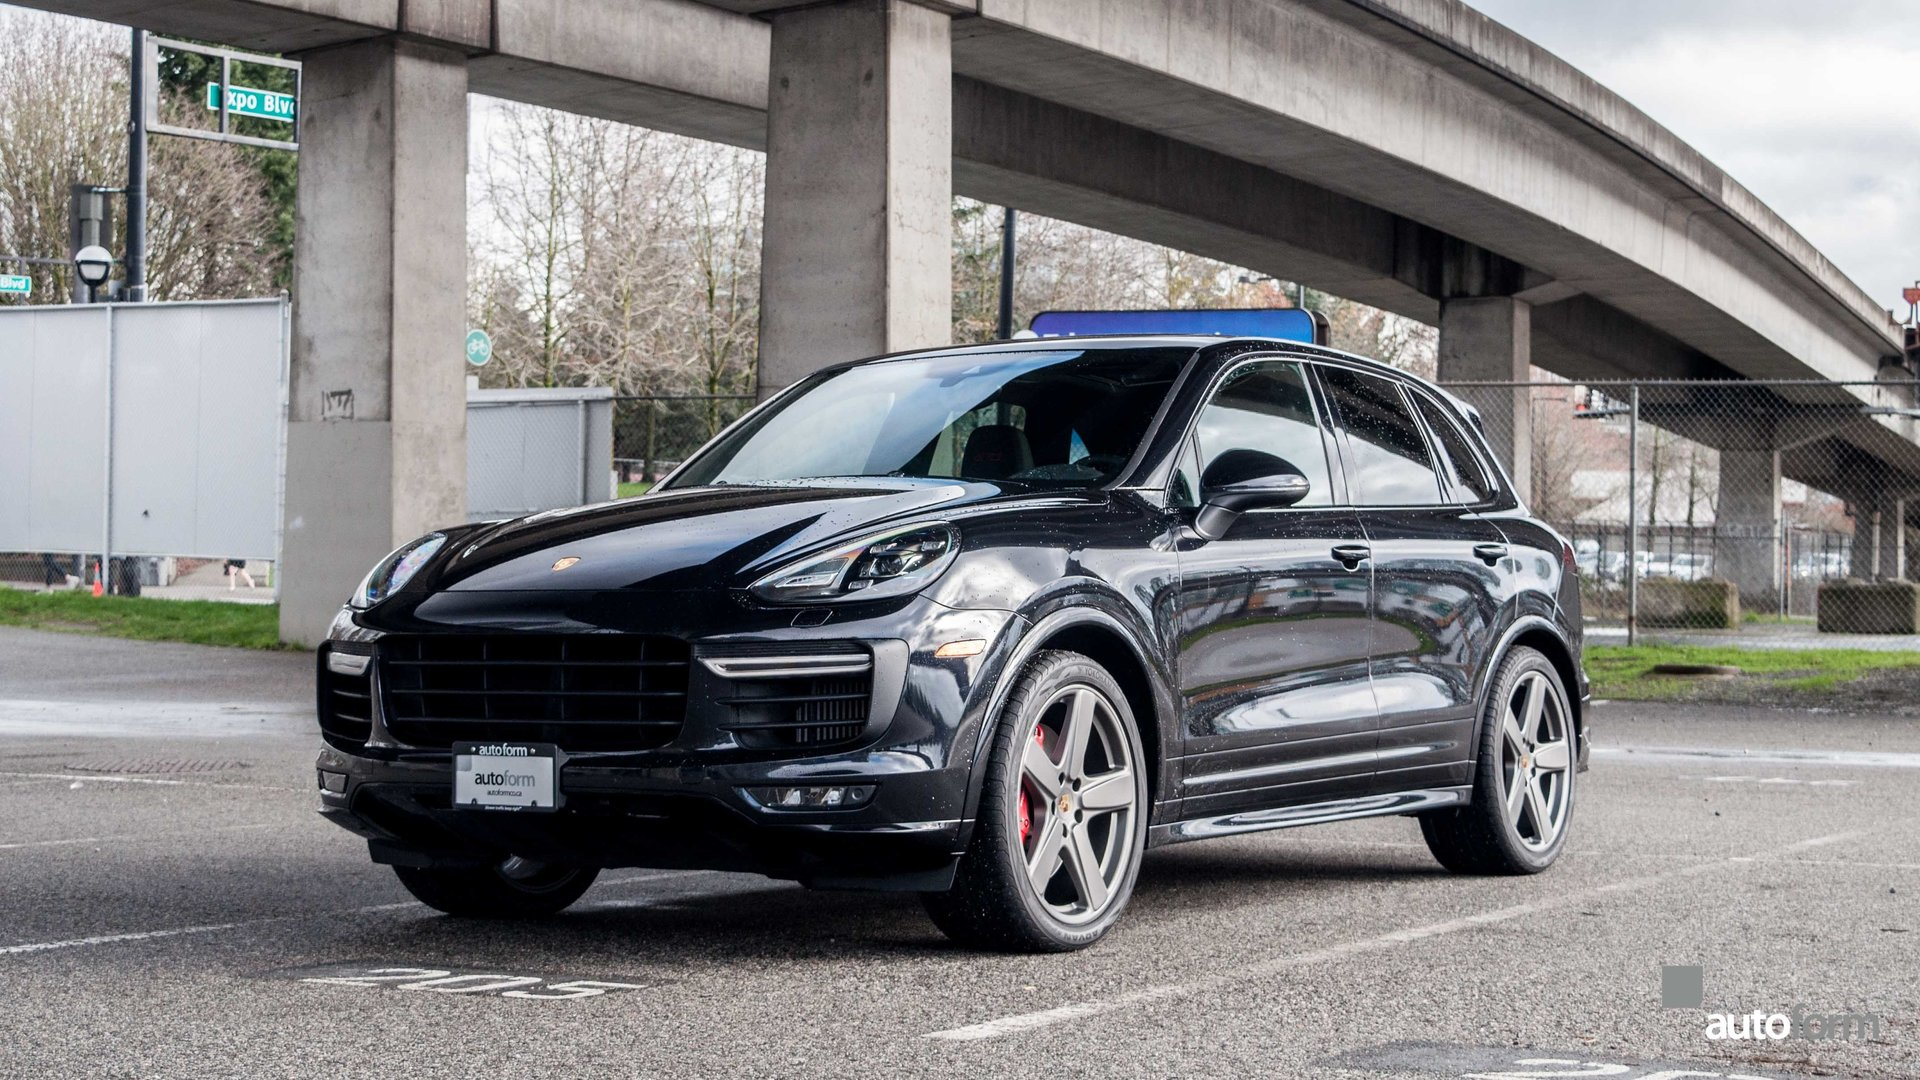 2016 porsche cayenne gts for sale 80223 mcg. Black Bedroom Furniture Sets. Home Design Ideas